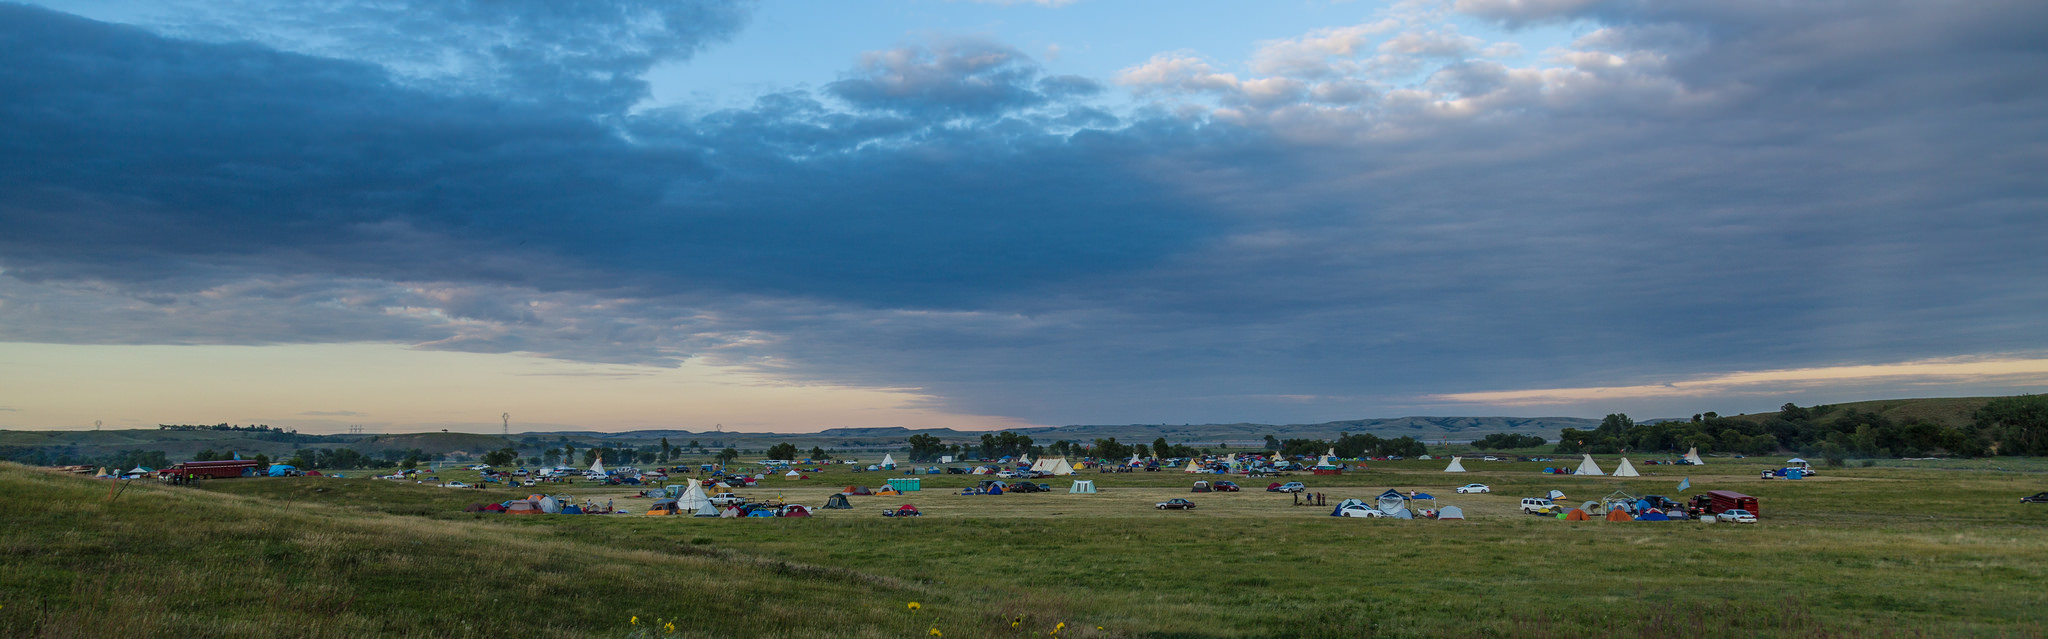 broad view of sky and prairie with tents and camping vehicles